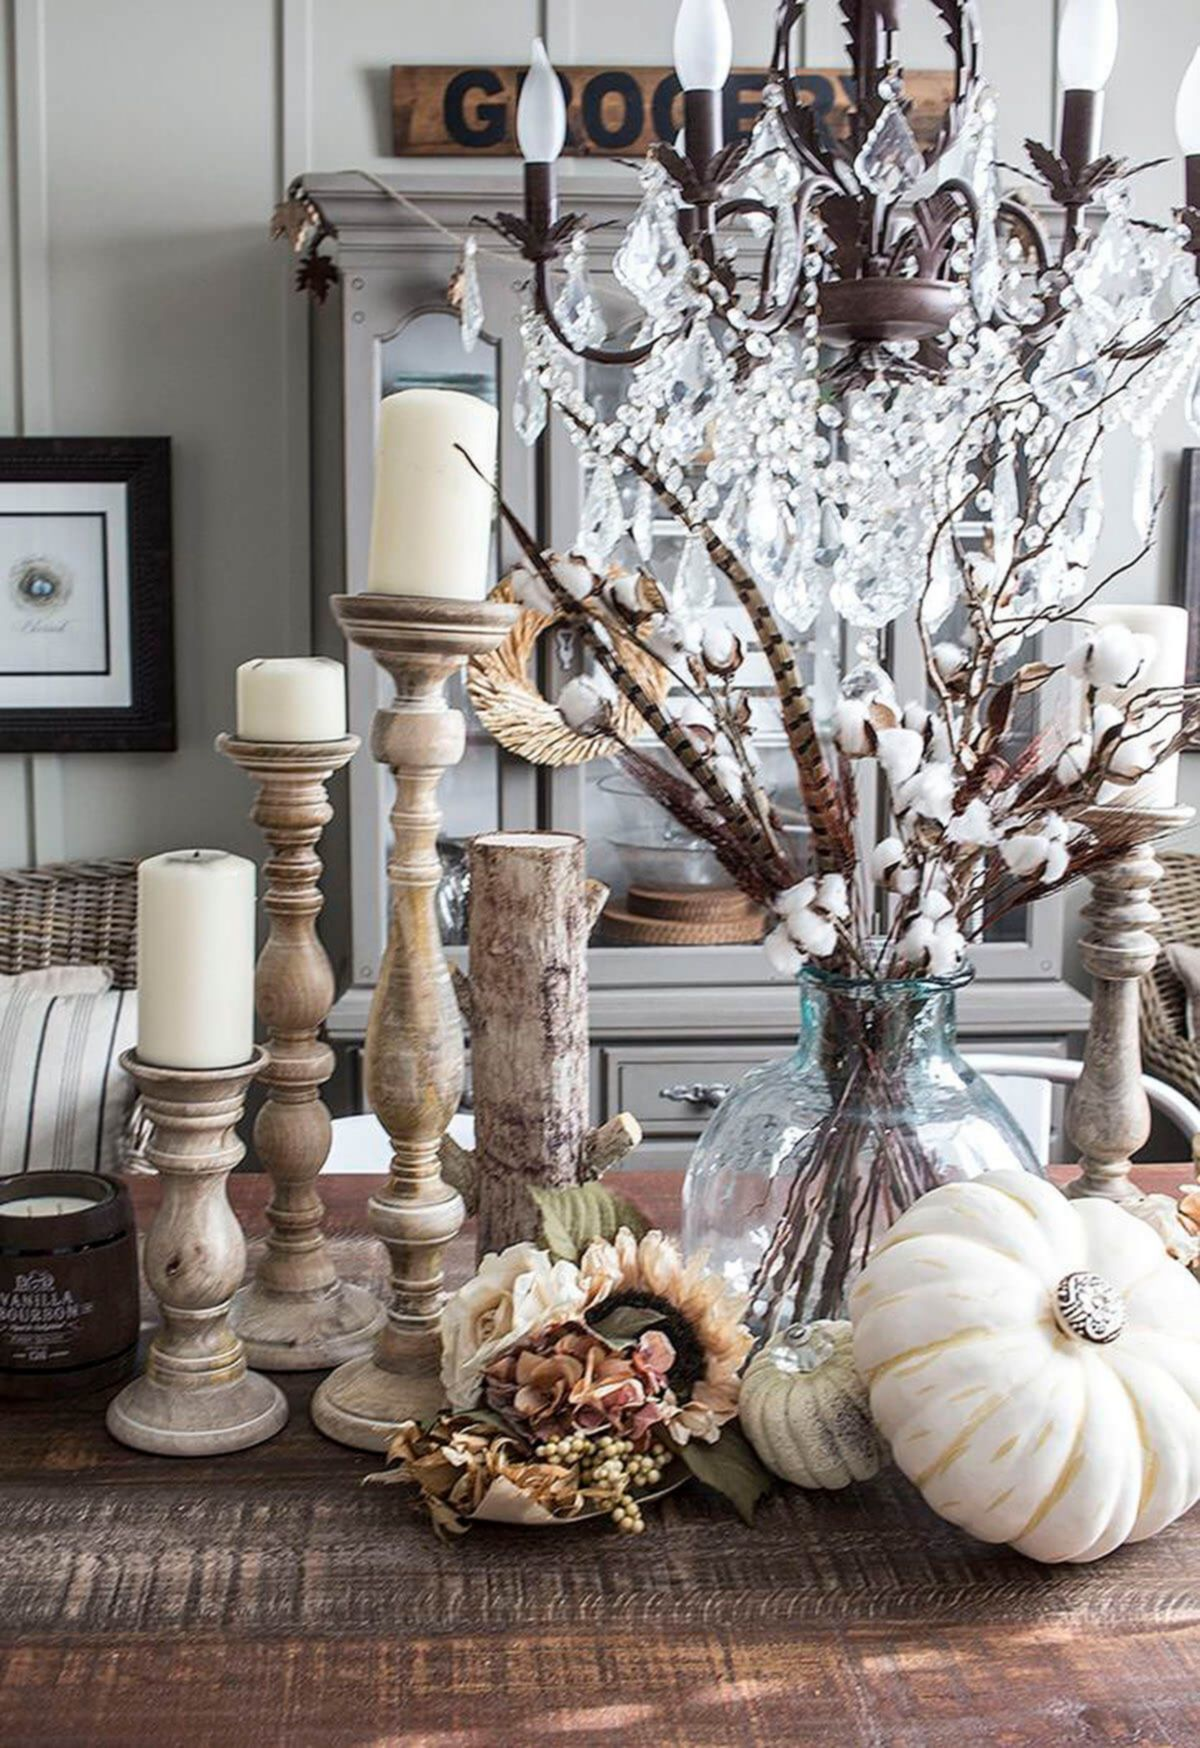 Best 9 Fall Farmhouse Decorating Ideas To Inspire You images